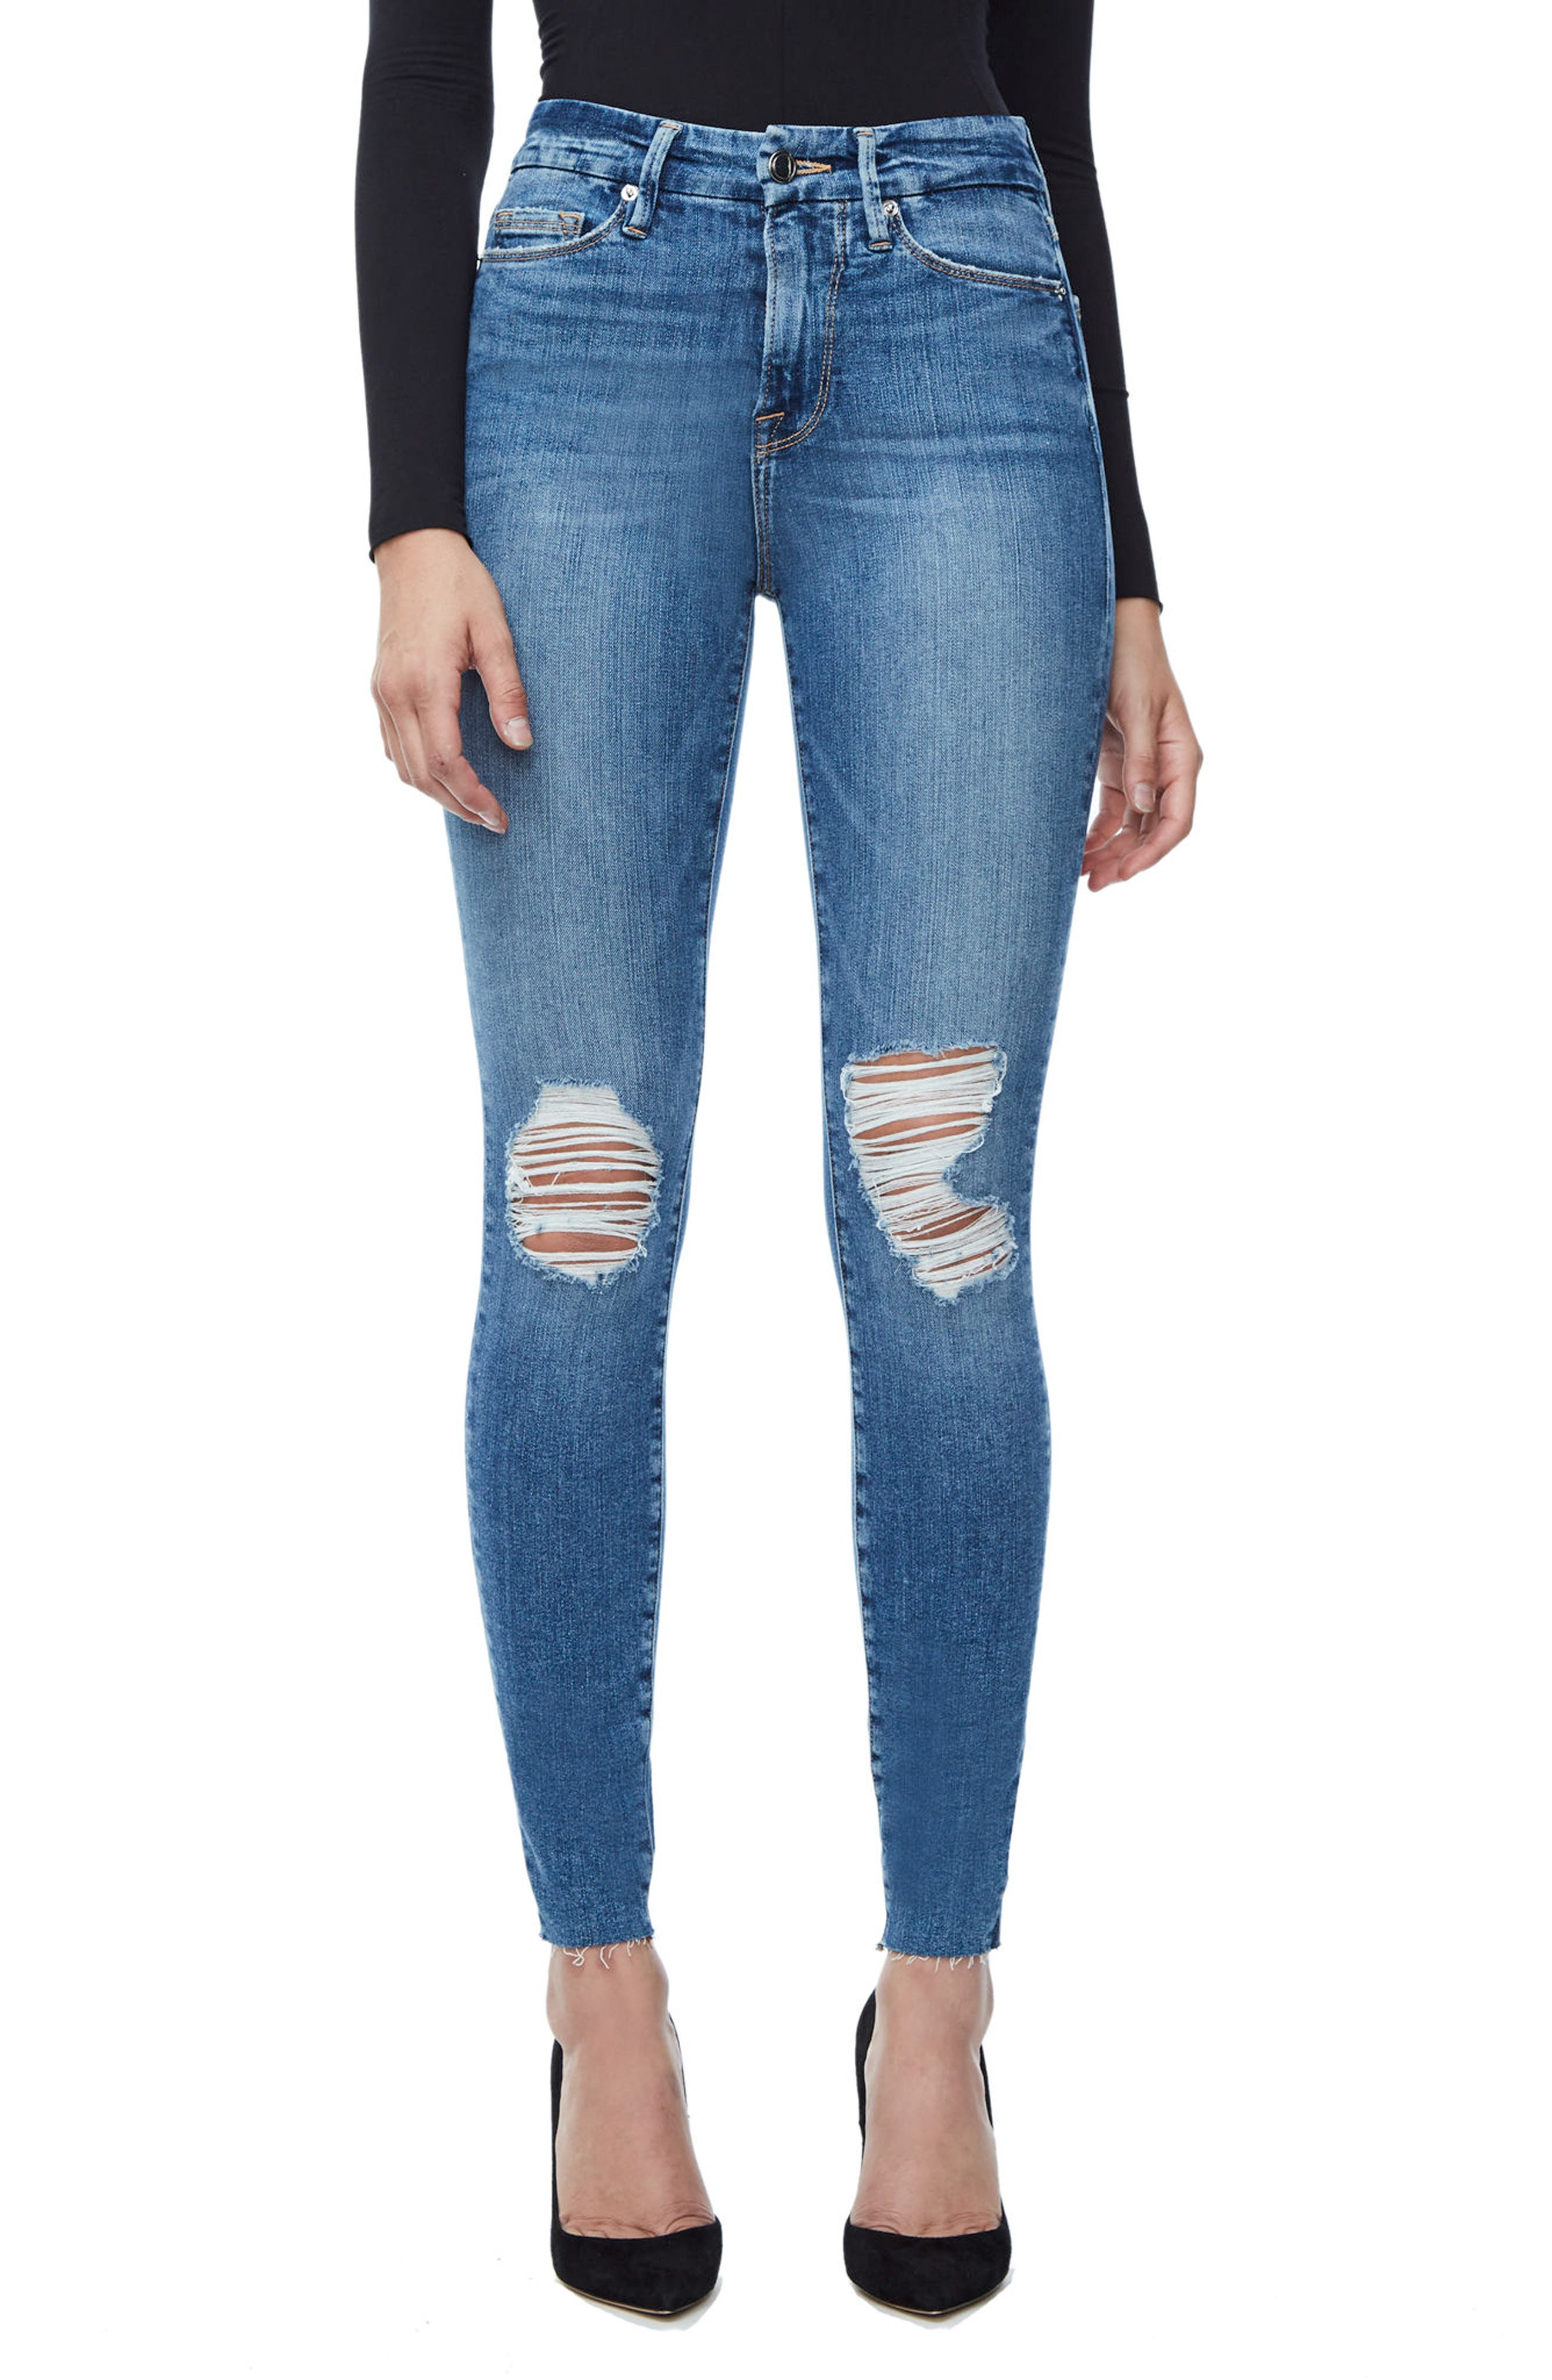 Alternate Image 1 Selected - Good American Good Waist Raw Edge Skinny Jeans (Blue 092) (Extended Sizes)